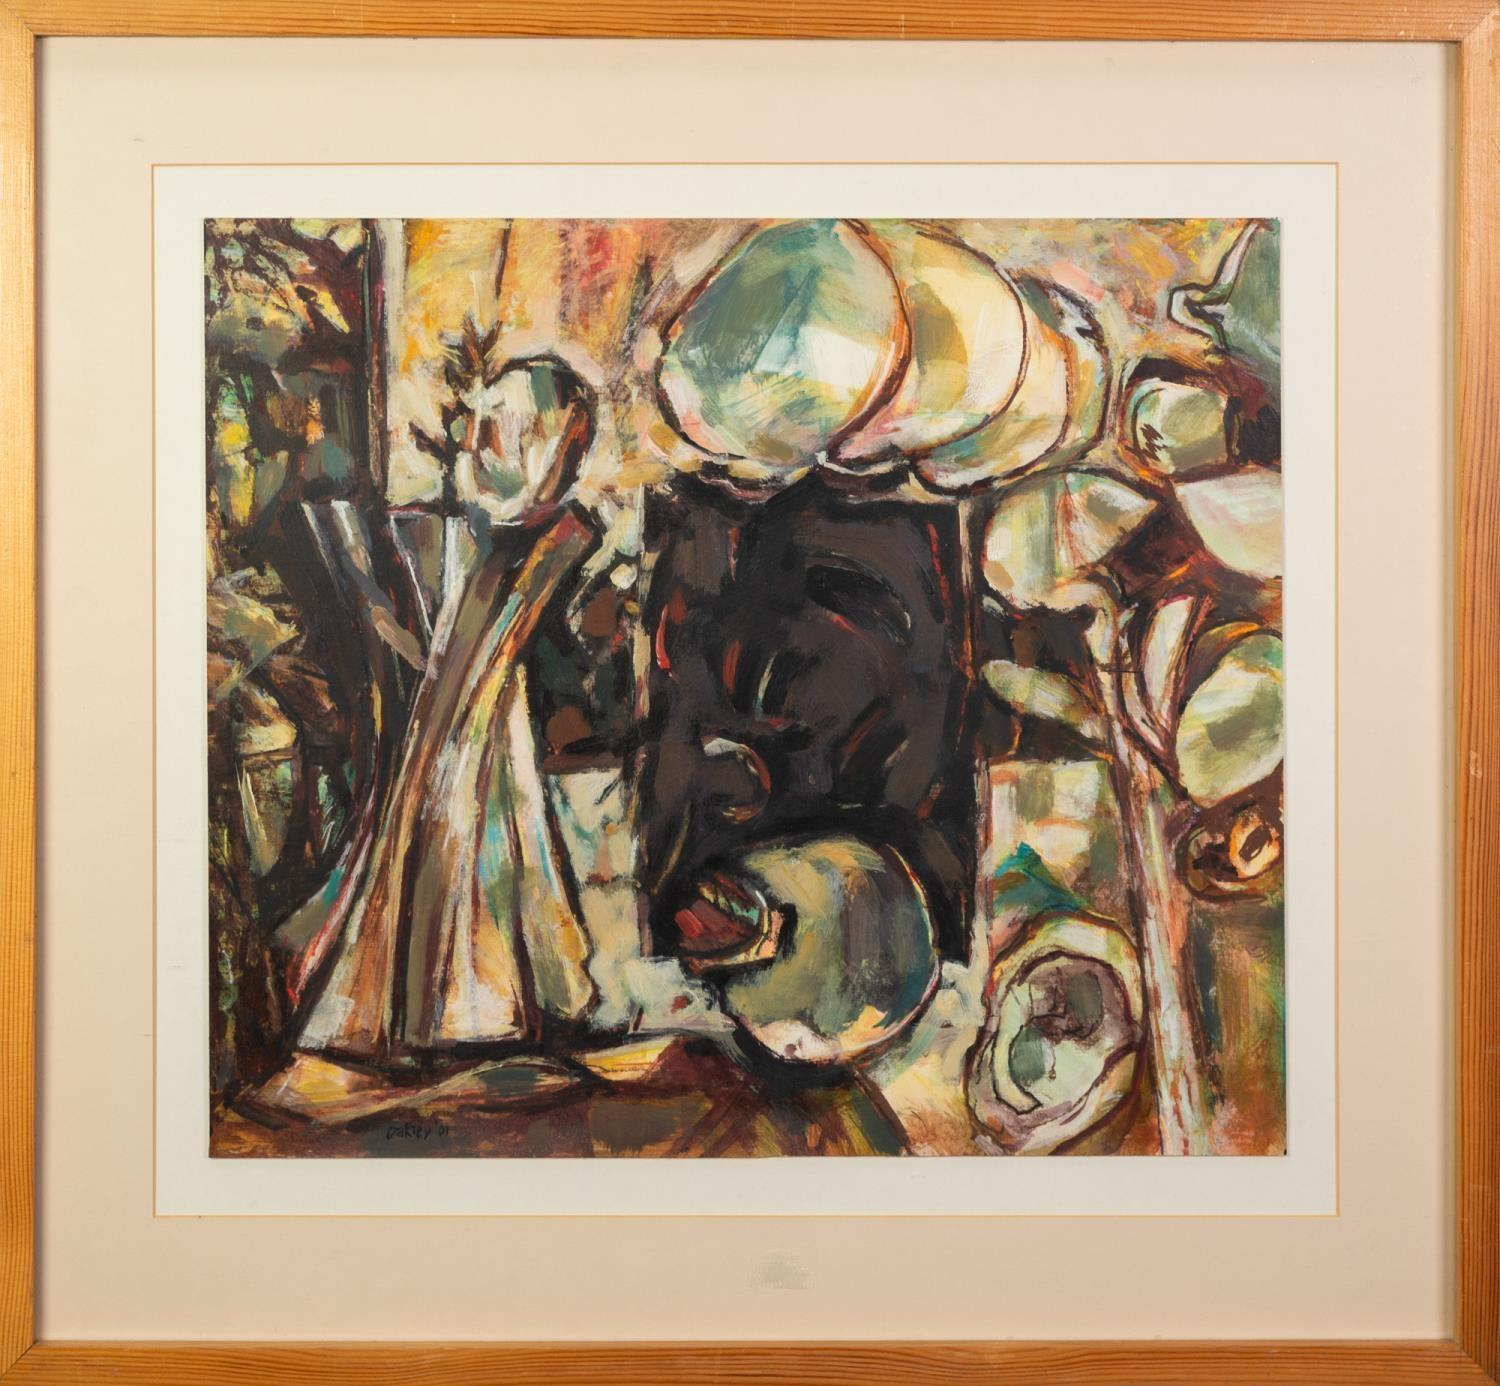 PETER OAKLEY (1935-2007) MIXED MEDIA ON PAPER ?Treasure of Zer? Signed and dated (20)01 16 ¼? x - Image 2 of 2